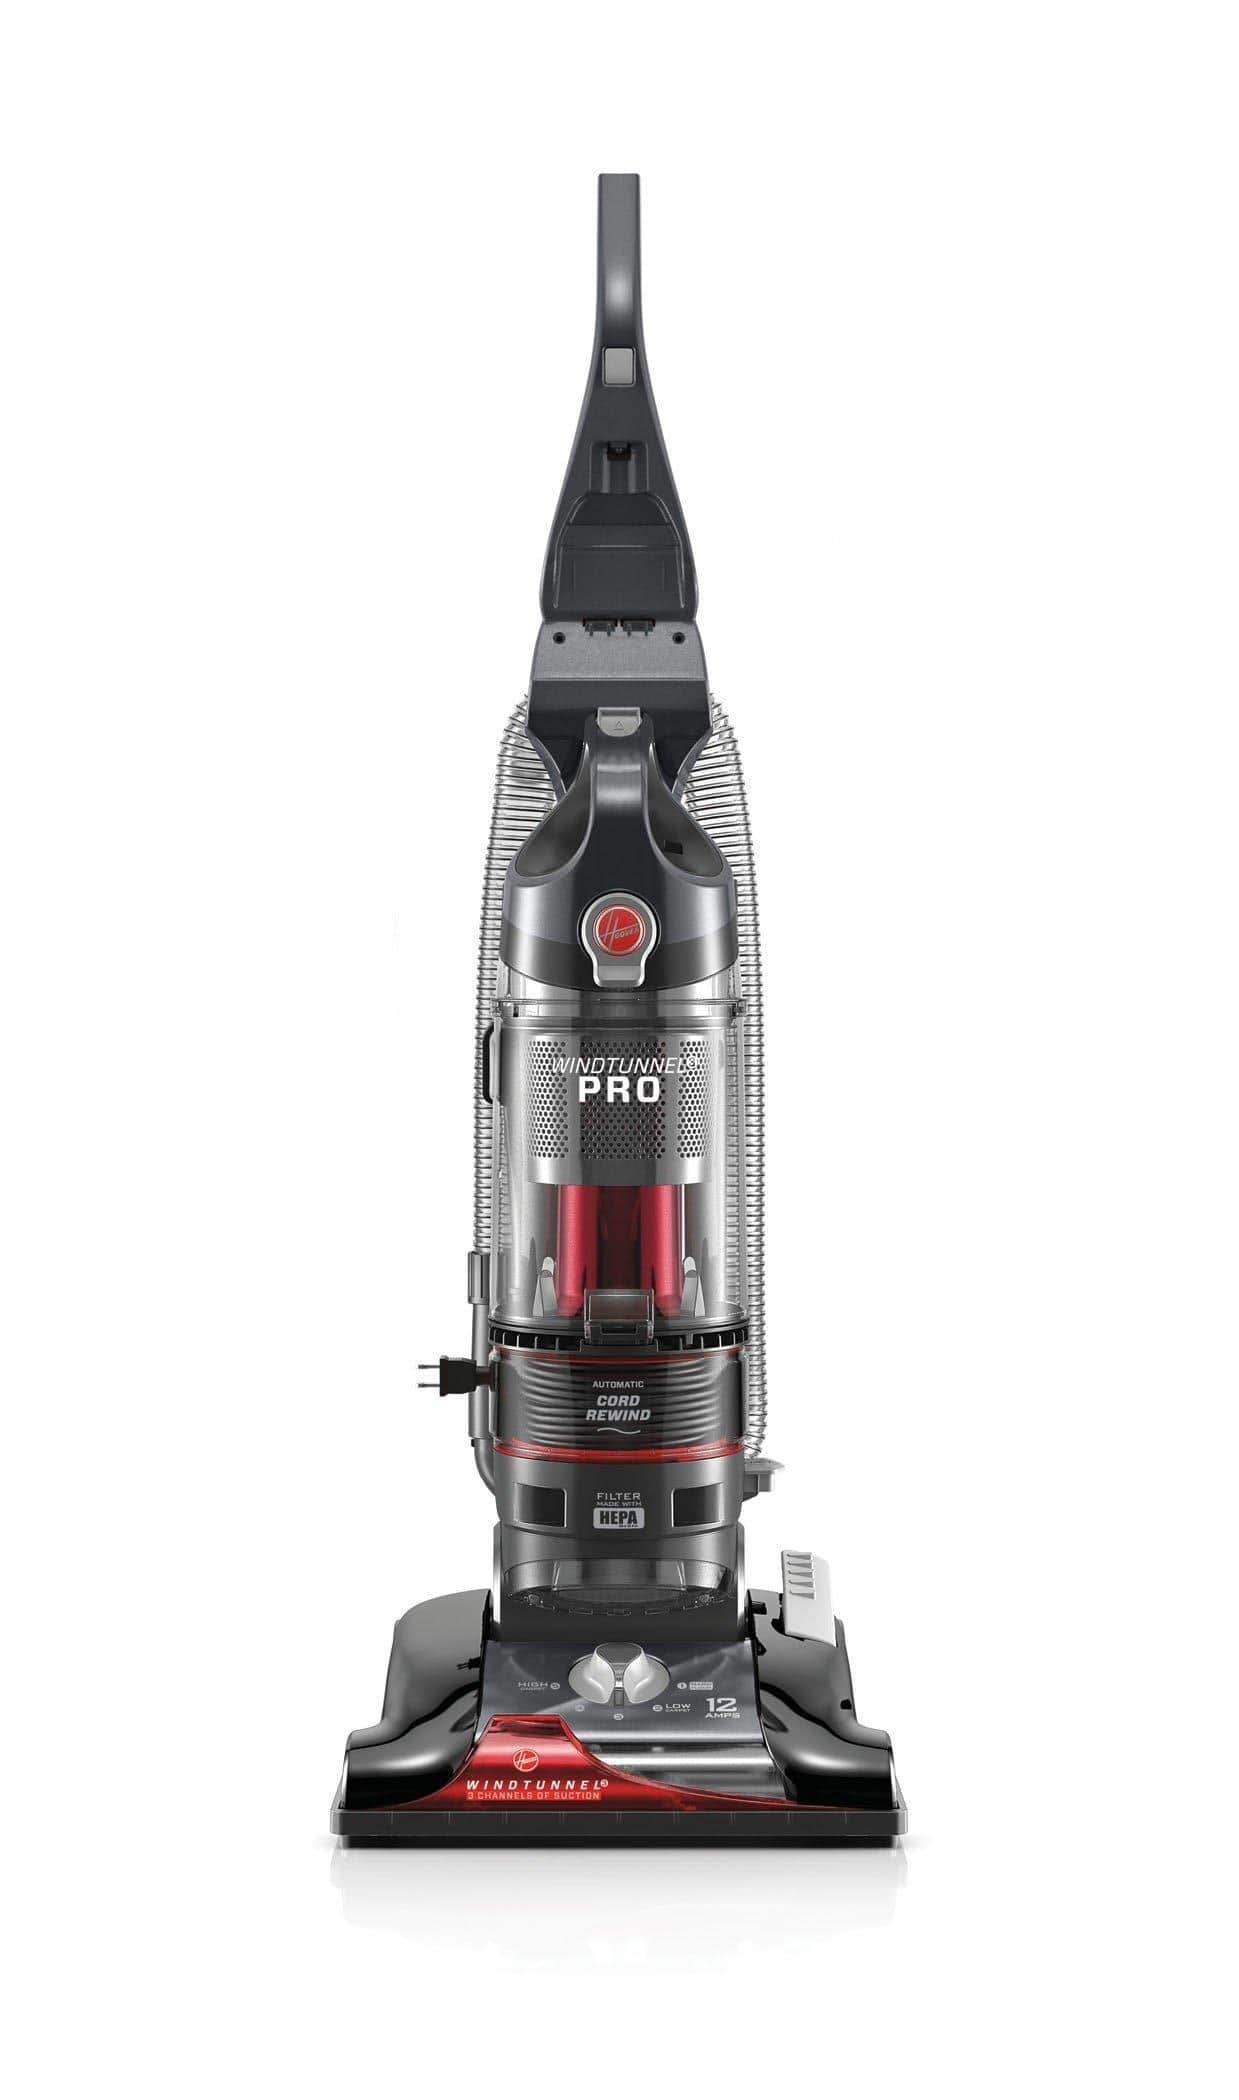 Hoover Windtunnel 3 Pro Bagless Upright Vacuum (refurbished) $32 shipped